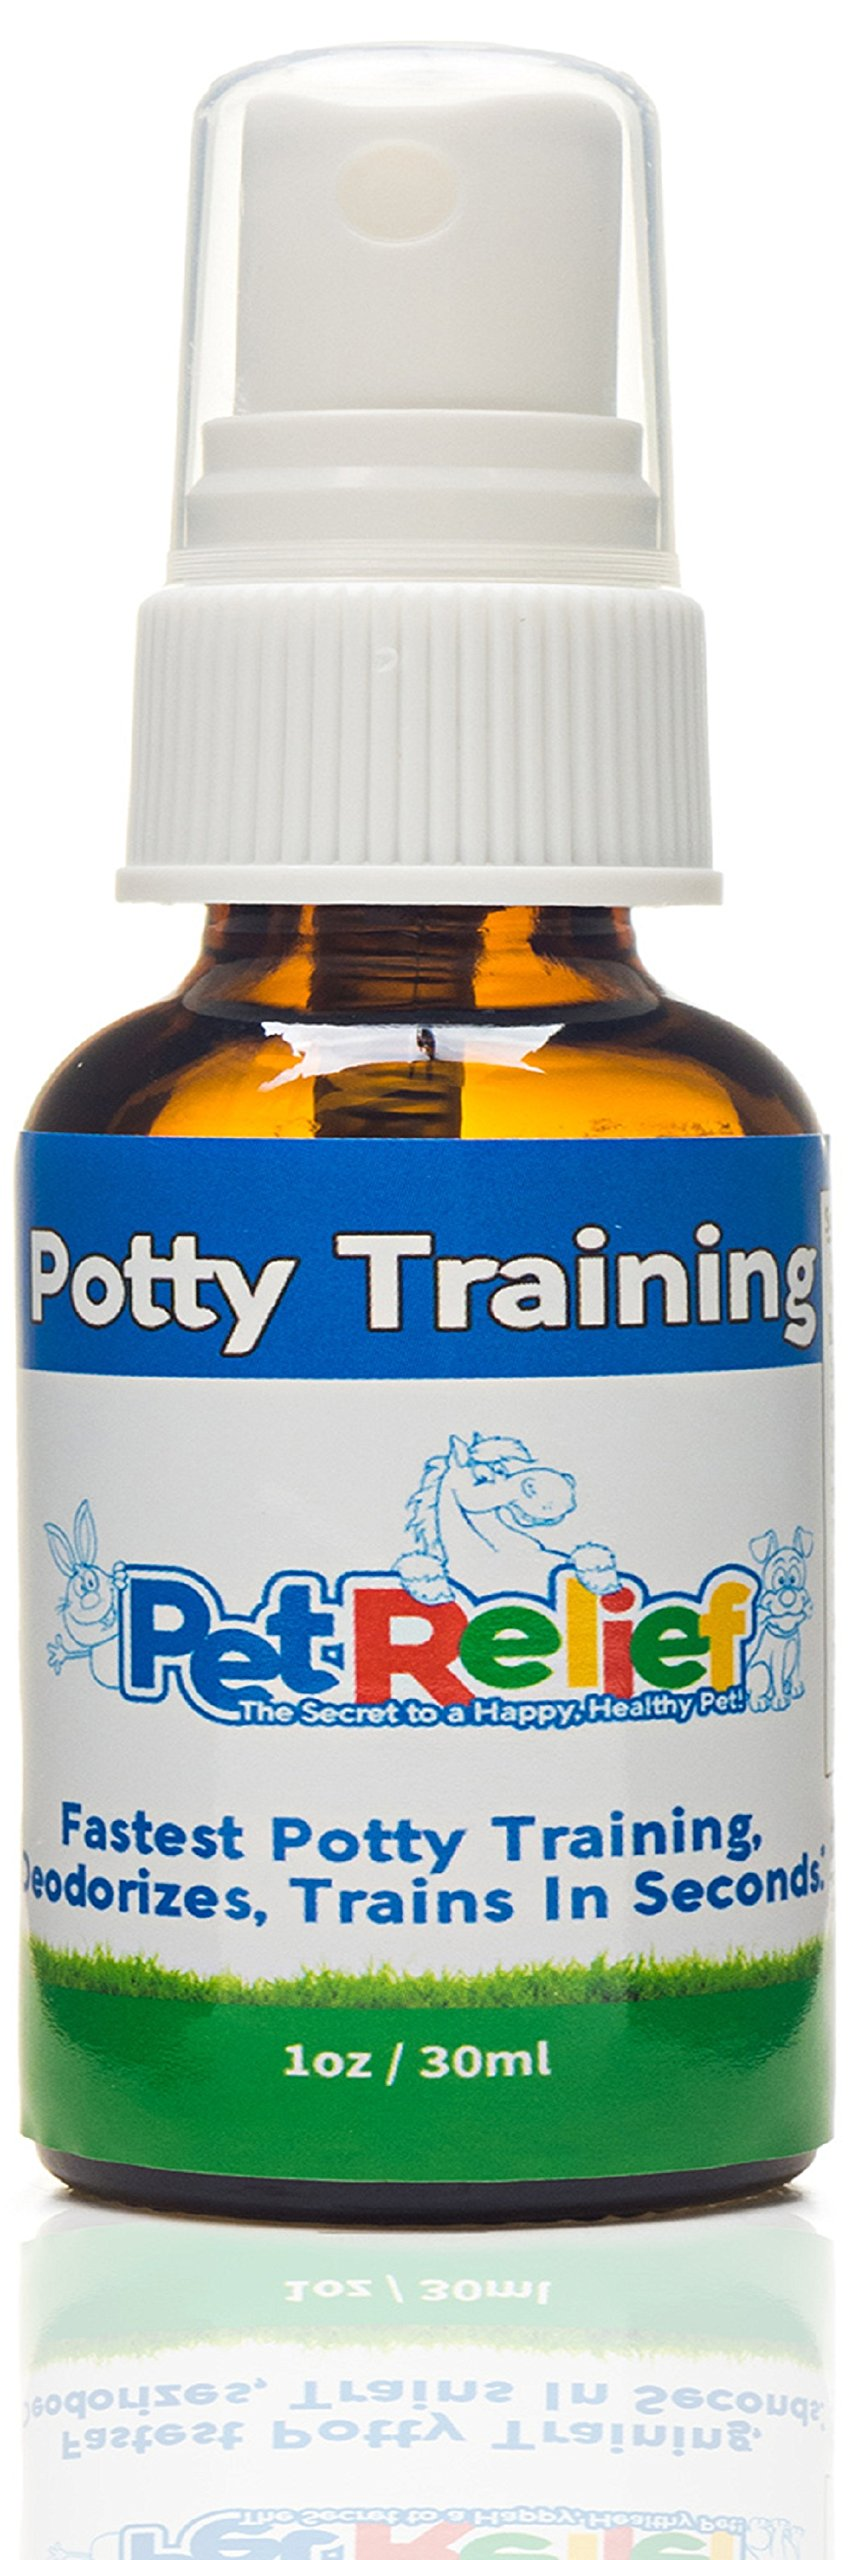 PET RELIEF Potty Training For Puppies, Dog & Puppy Potty Training Spray, Urine Repellent,! 30ml Natural Potty Training Aid, Stop Peeing Spray, Piddle Place, No Side Effects! Made USA by PET RELIEF